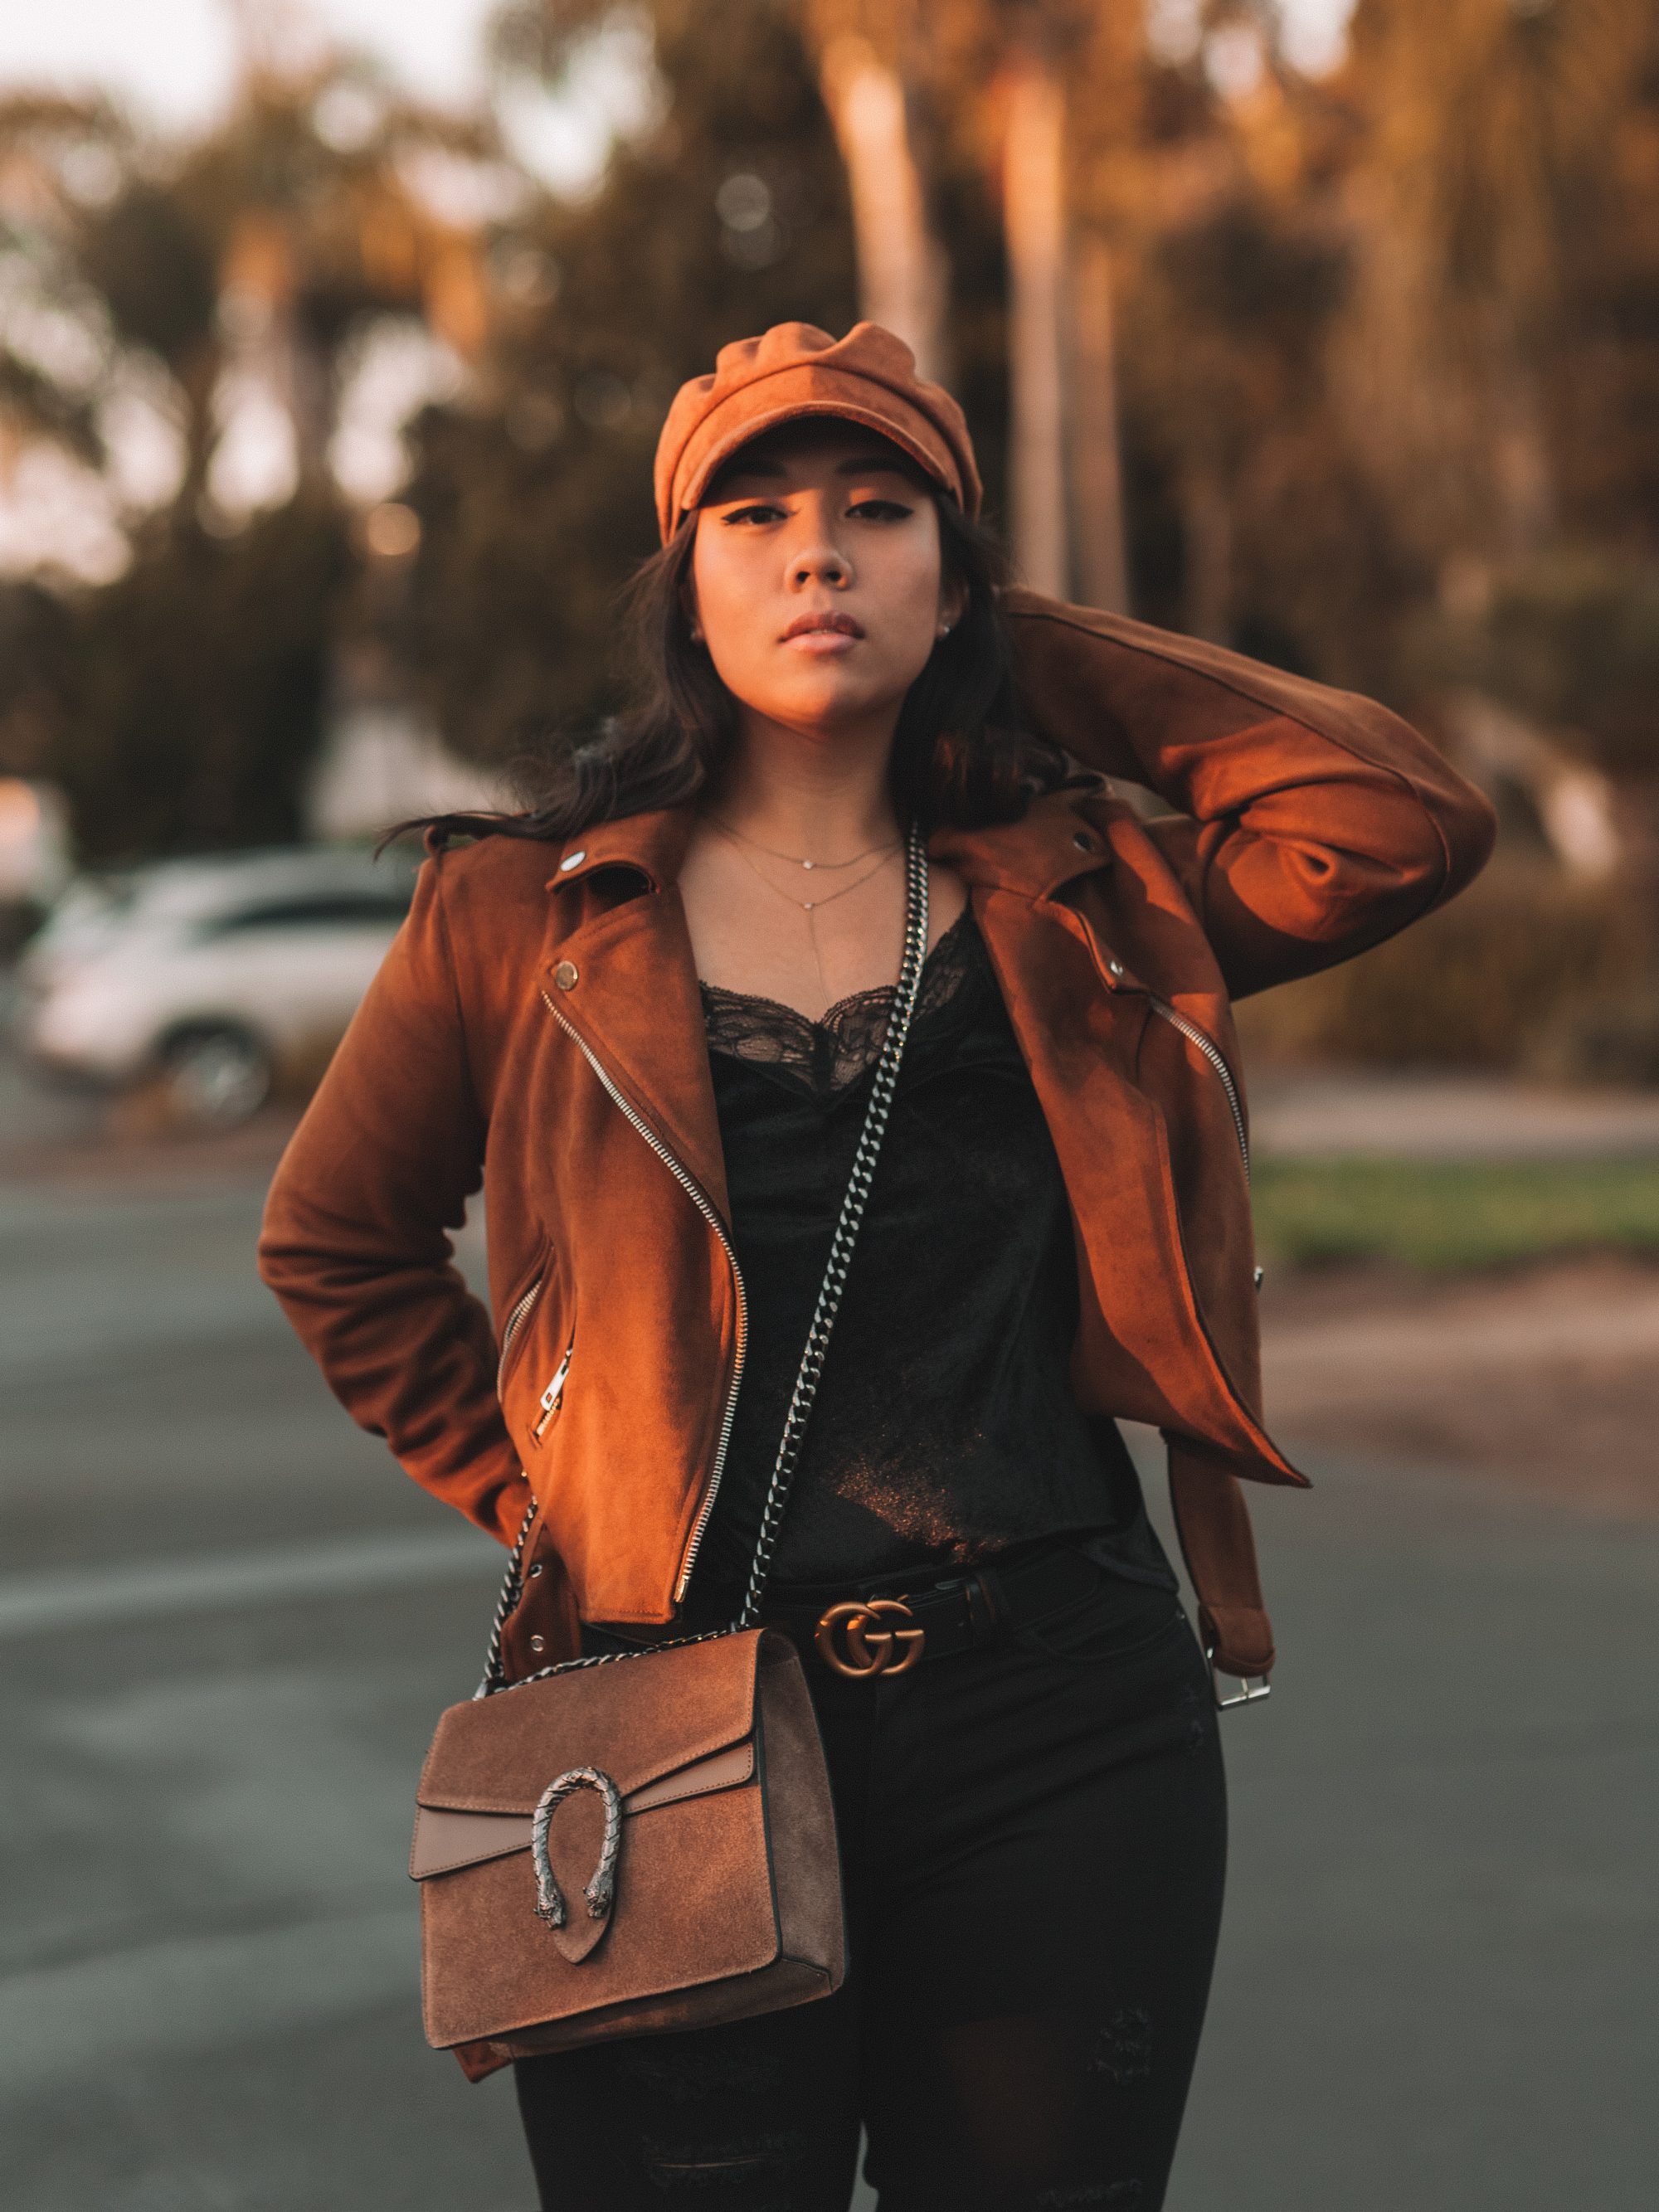 I'm sure you probably have your very own black moto jacket in your closet right now (if you don't, you can always grab a quality leather or faux leather one at Shopbop!), so let's talk about ways to spice up the iconic jacket. - www.theballeronabudget.com